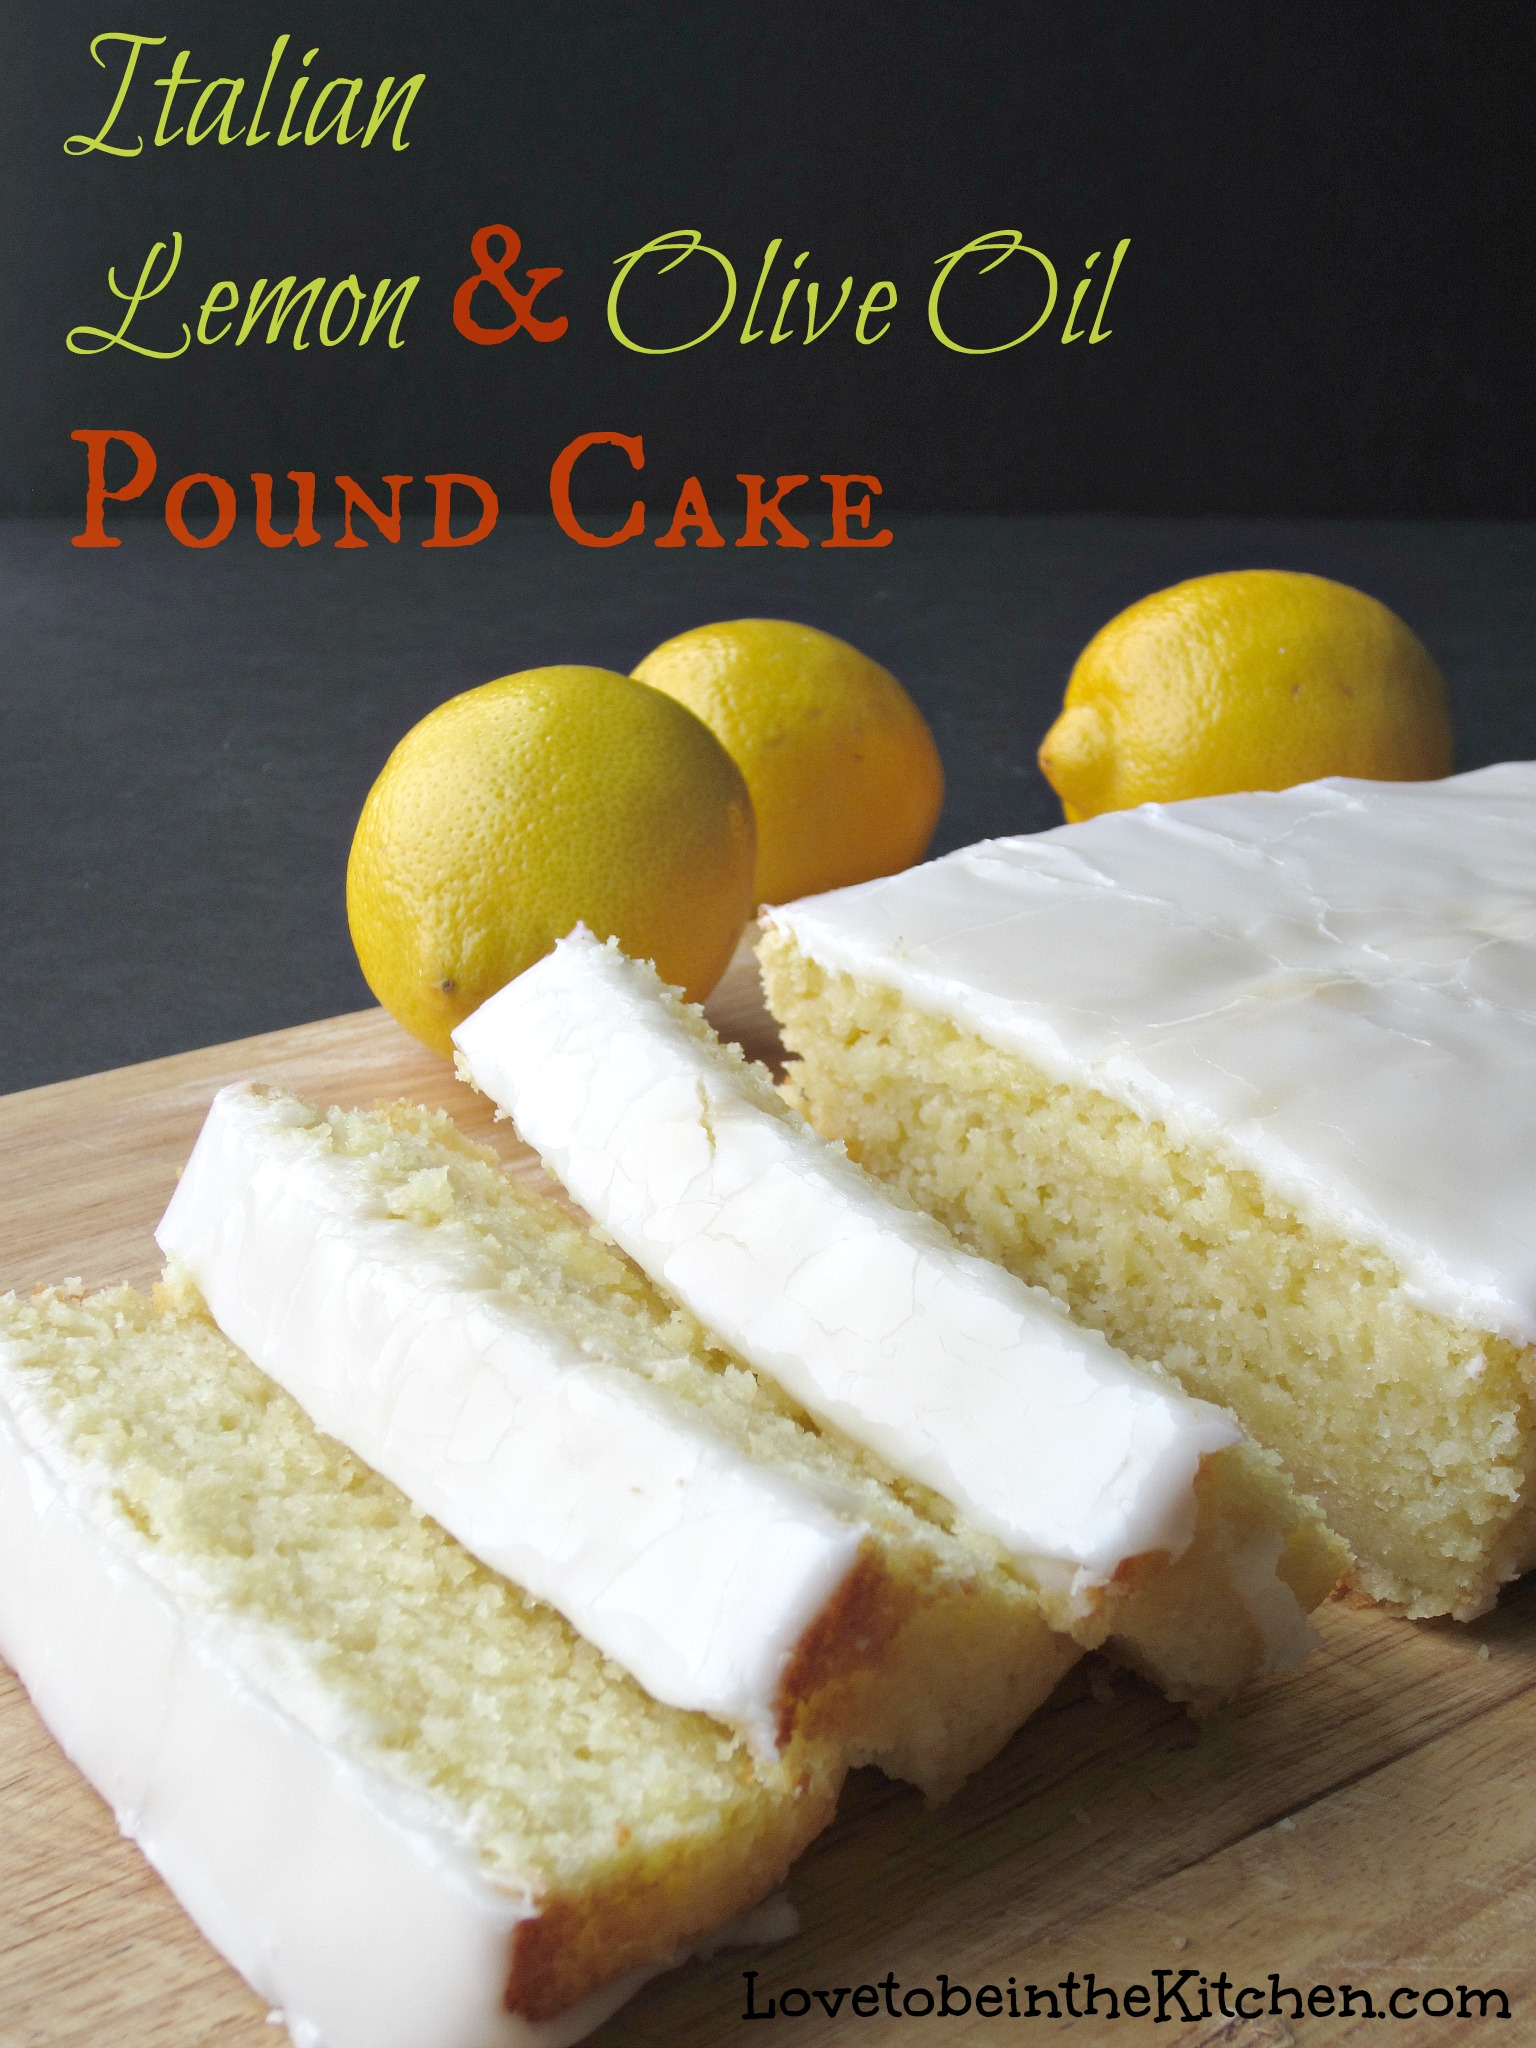 Italian Lemon & Olive Oil Pound Cake - Love to be in the Kitchen